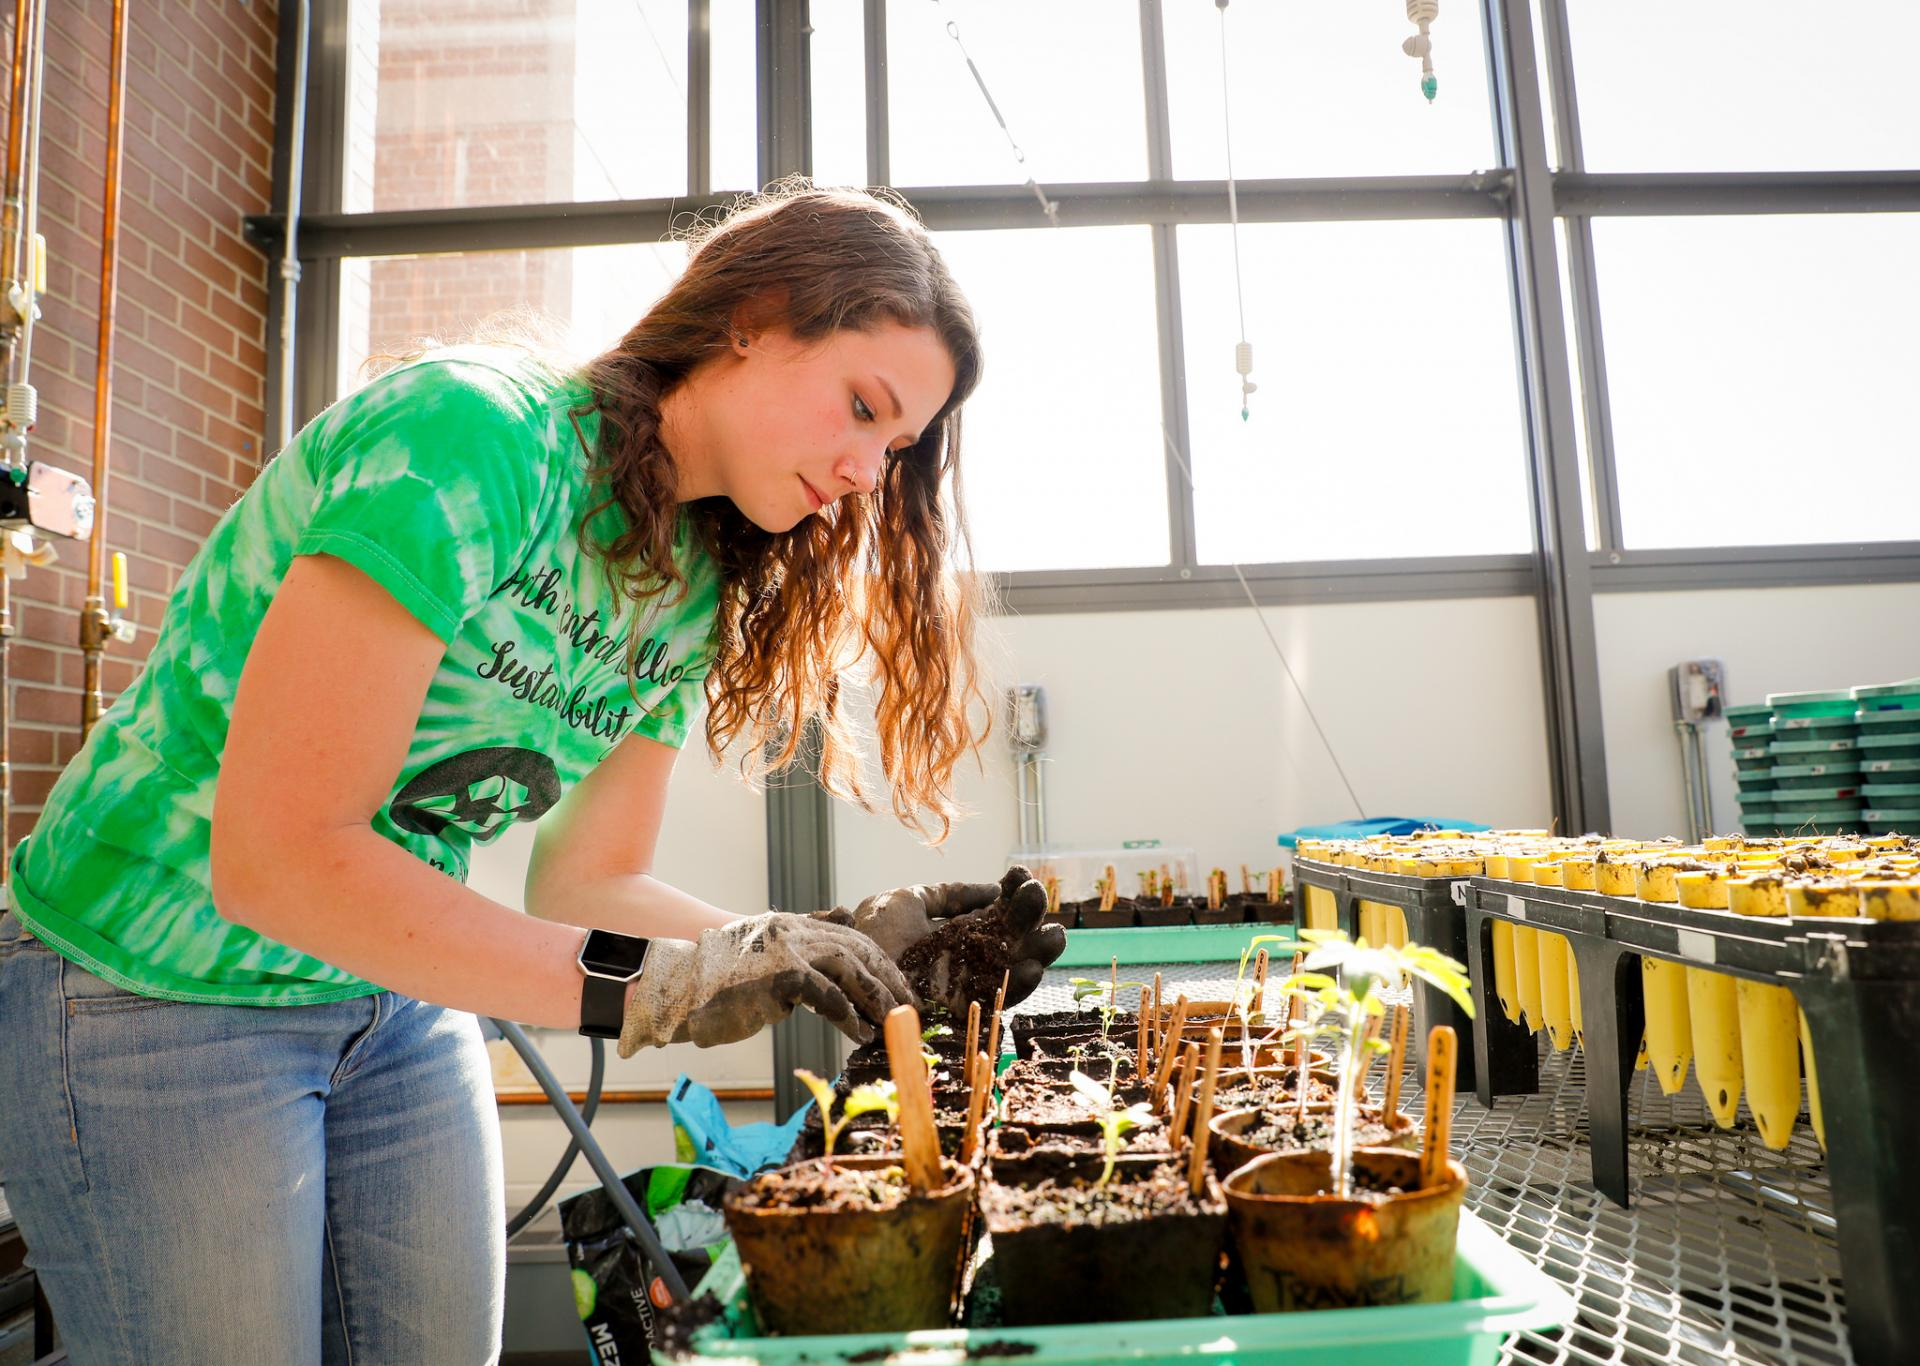 Environmental studies major Anna Halverson '20